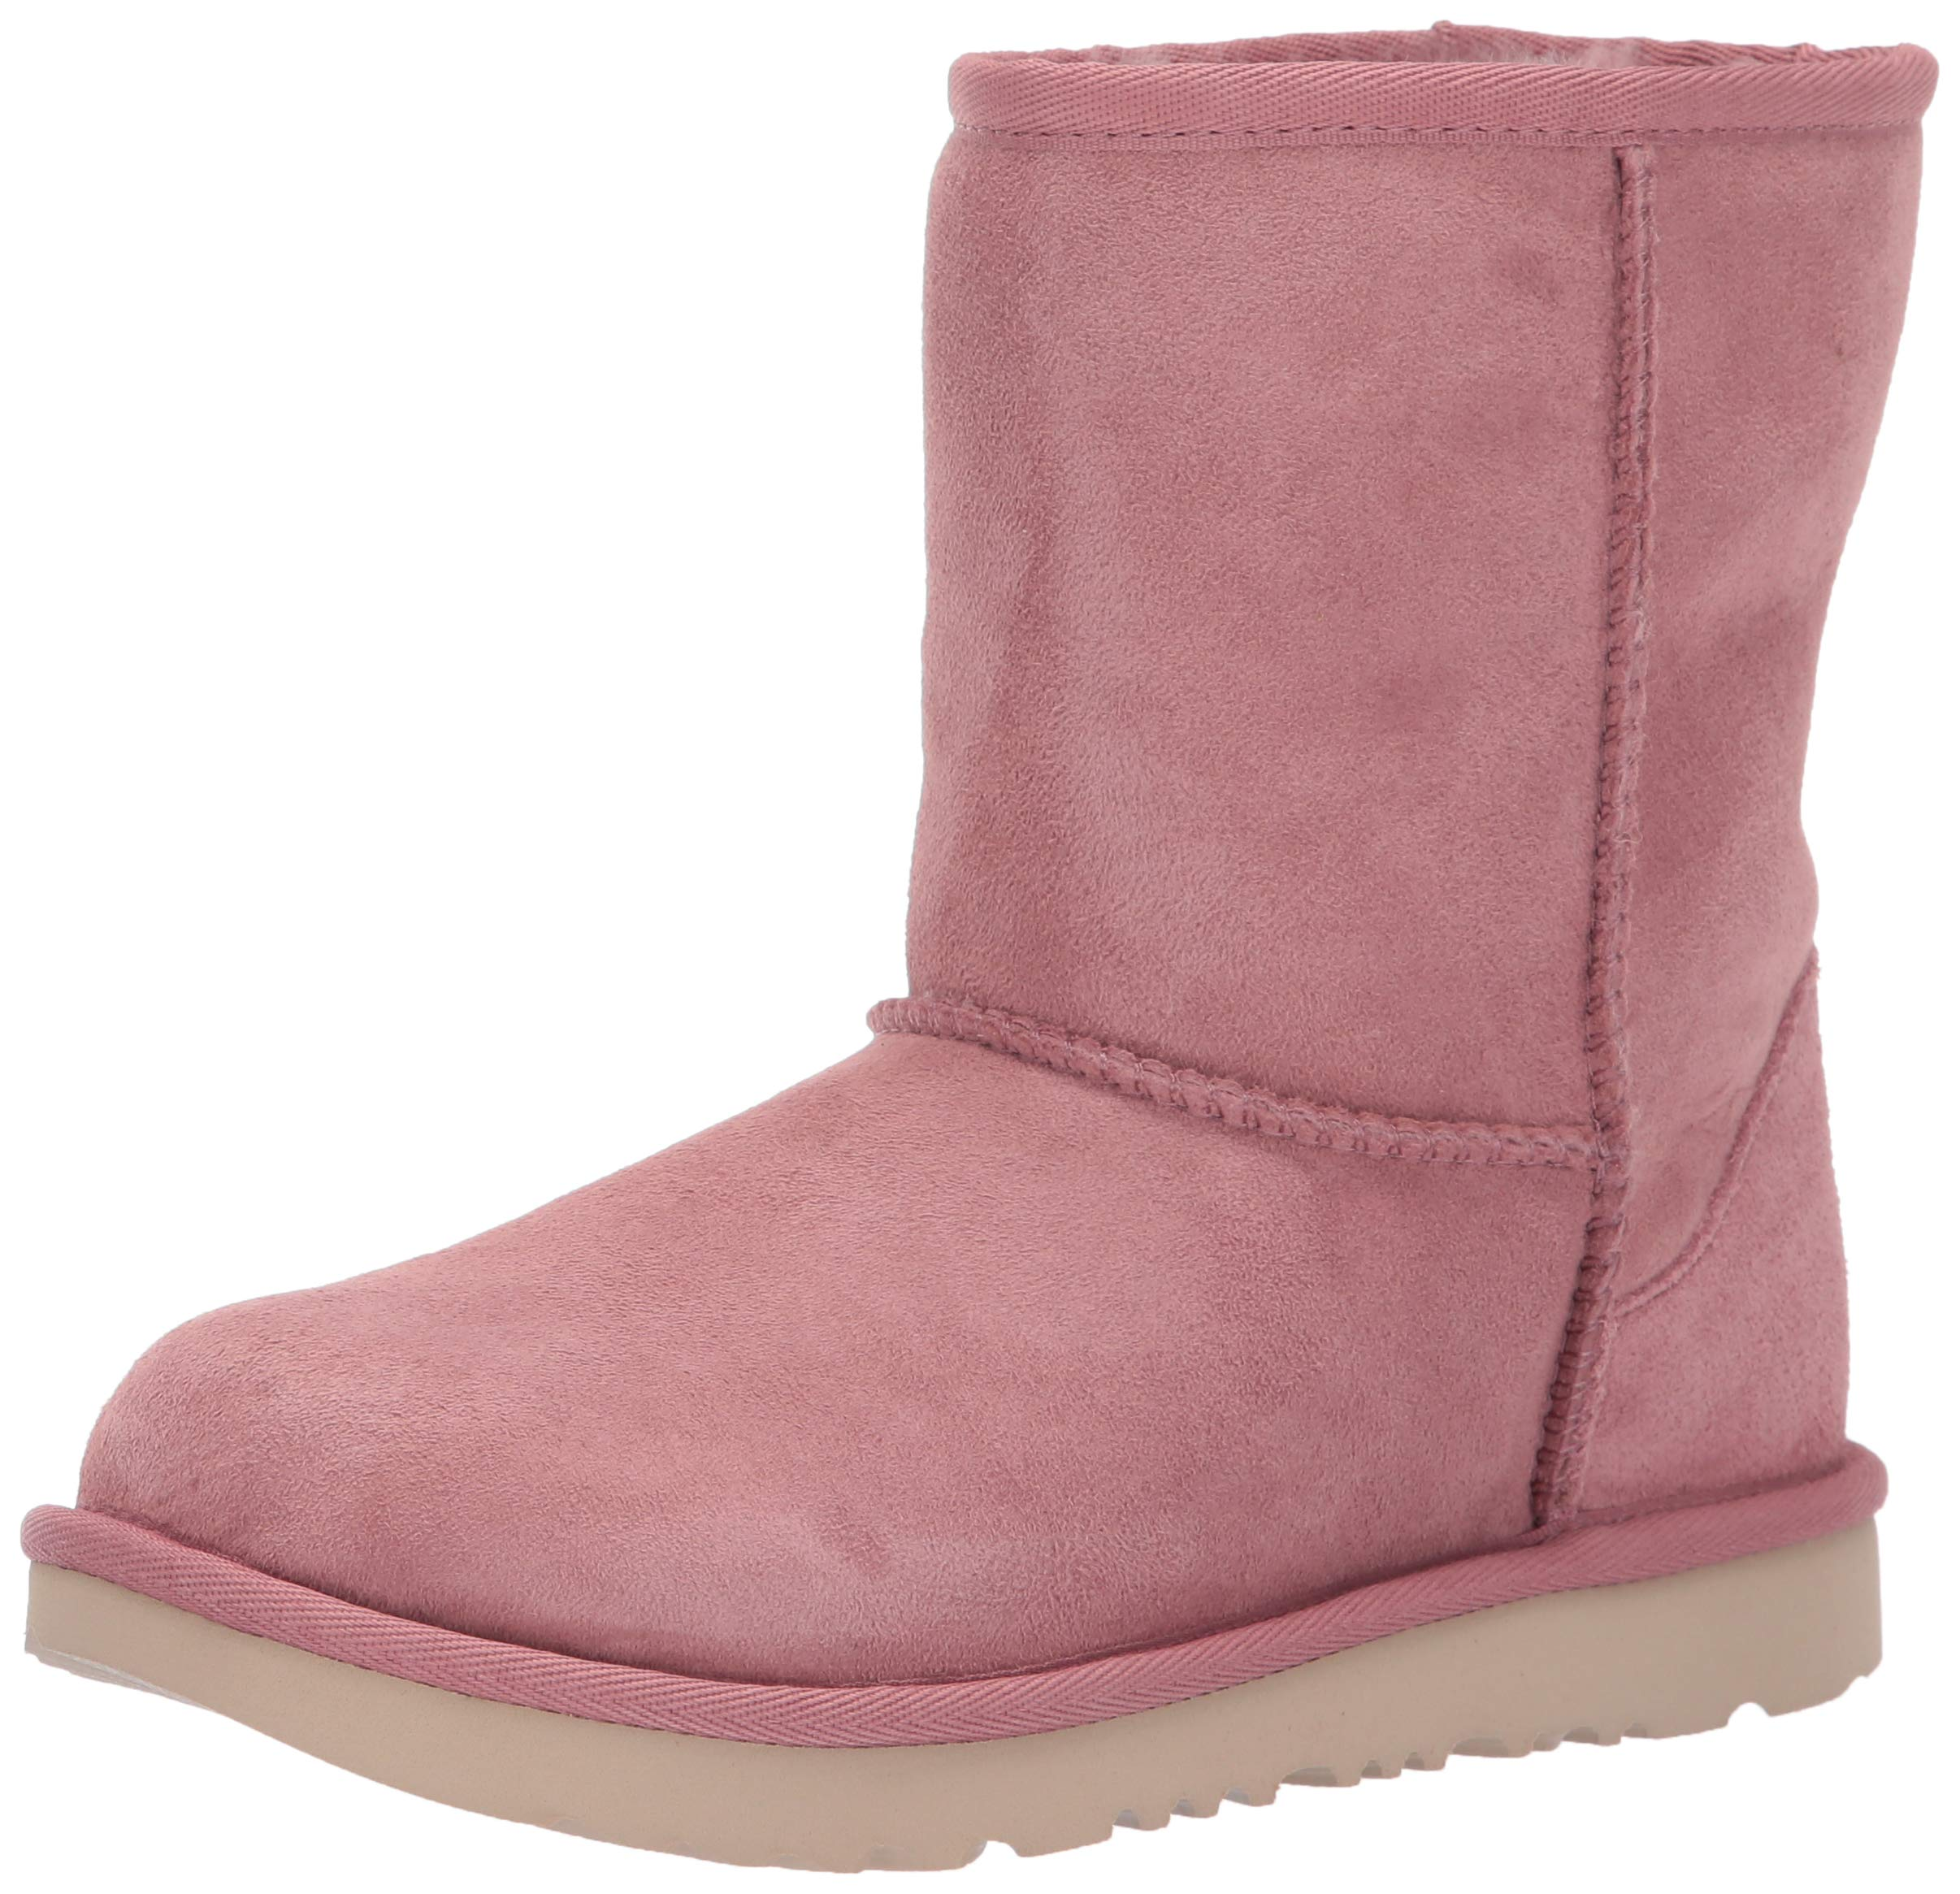 UGG Unisex K Classic II Fashion Boot, Pink Dawn 3 M US Little Kid